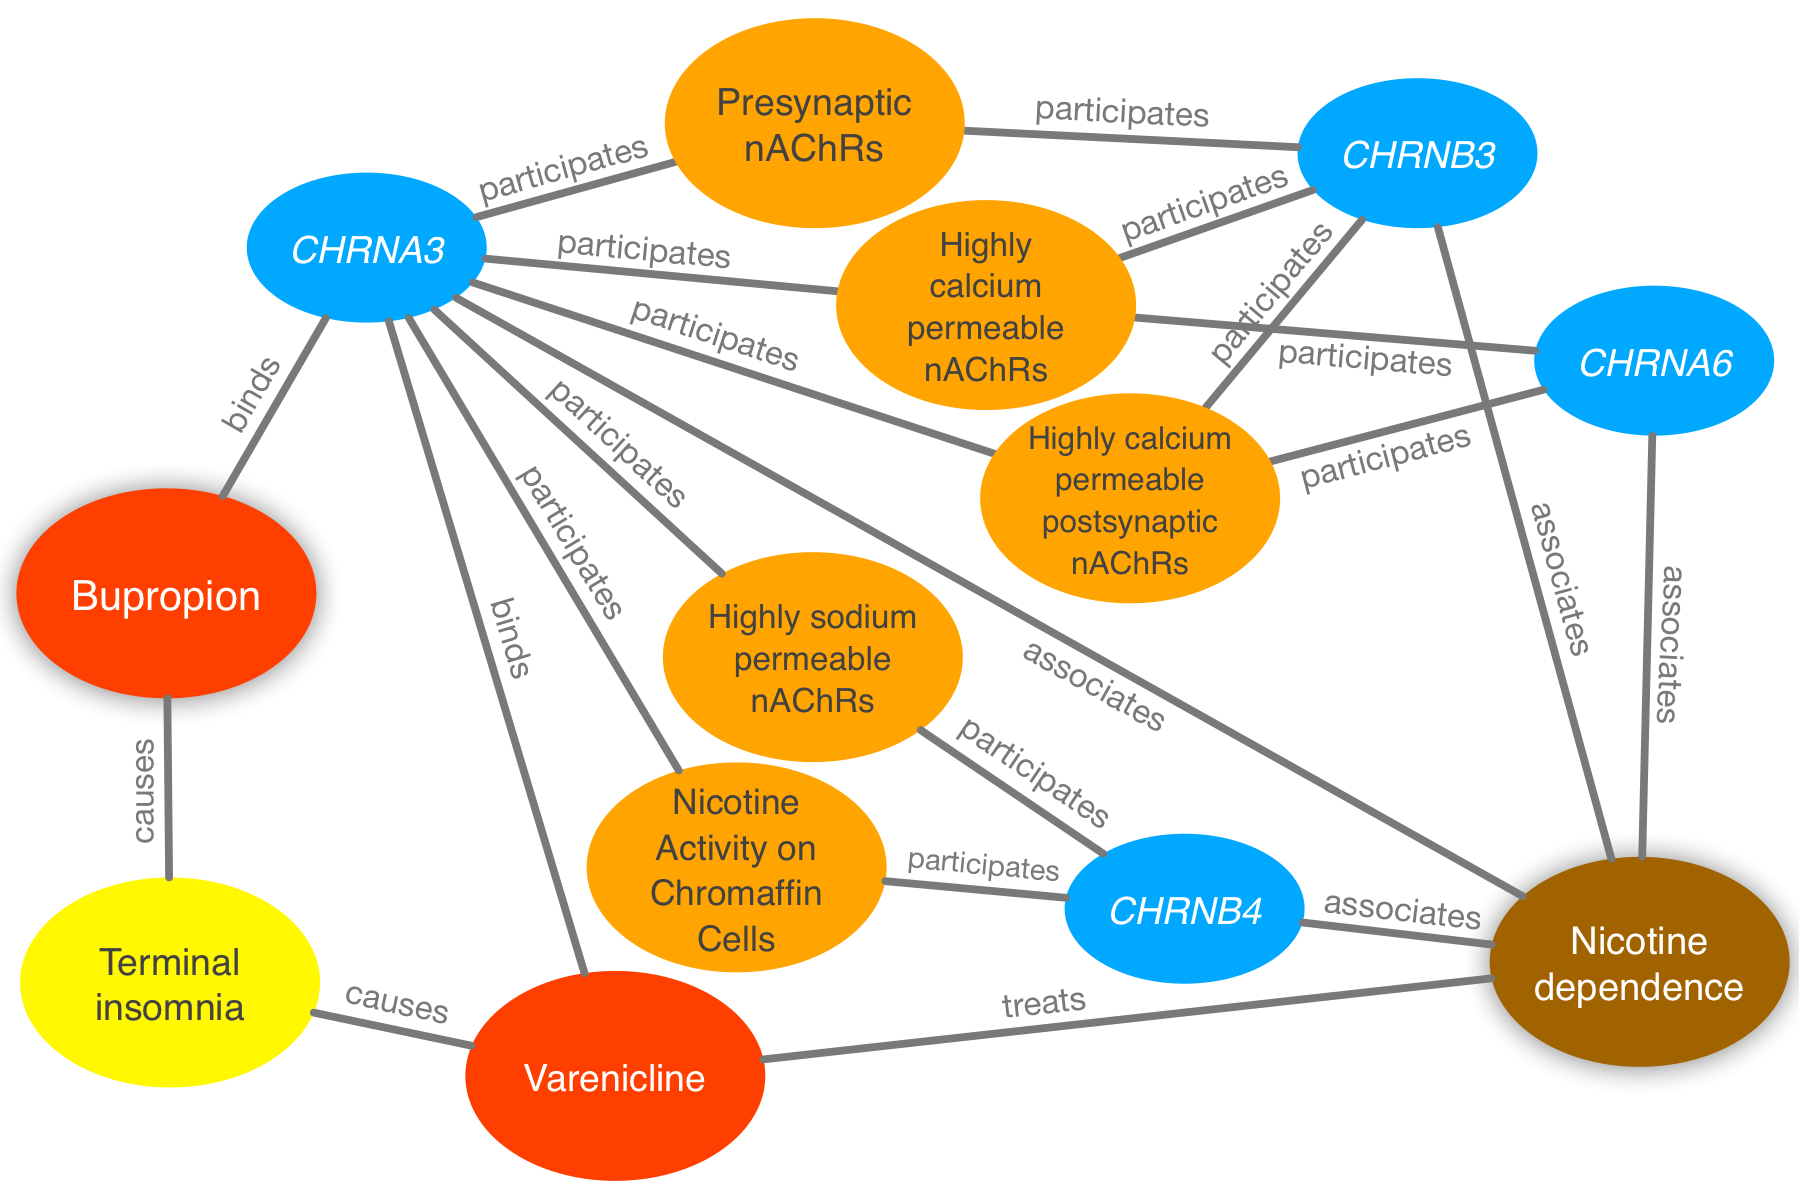 Figure 4: Evidence supporting the repurposing of bupropion for smoking cessation. This figure shows the 10 most supportive paths (out of 365 total) for treating nicotine dependence with bupropion, as available in this prediction's Neo4j Browser guide. Our method detected that bupropion targets the CHRNA3 gene, which is also targeted by the known-treatment varenicline [44]. Furthermore, CHRNA3 is associated with nicotine dependence [45] and participates in several pathways that contain other nicotinic-acetylcholine-receptor (nAChR) genes associated with nicotine dependence. Finally, bupropion causes terminal insomnia [46] as does varenicline [47], which could indicate an underlying common mechanism of action.